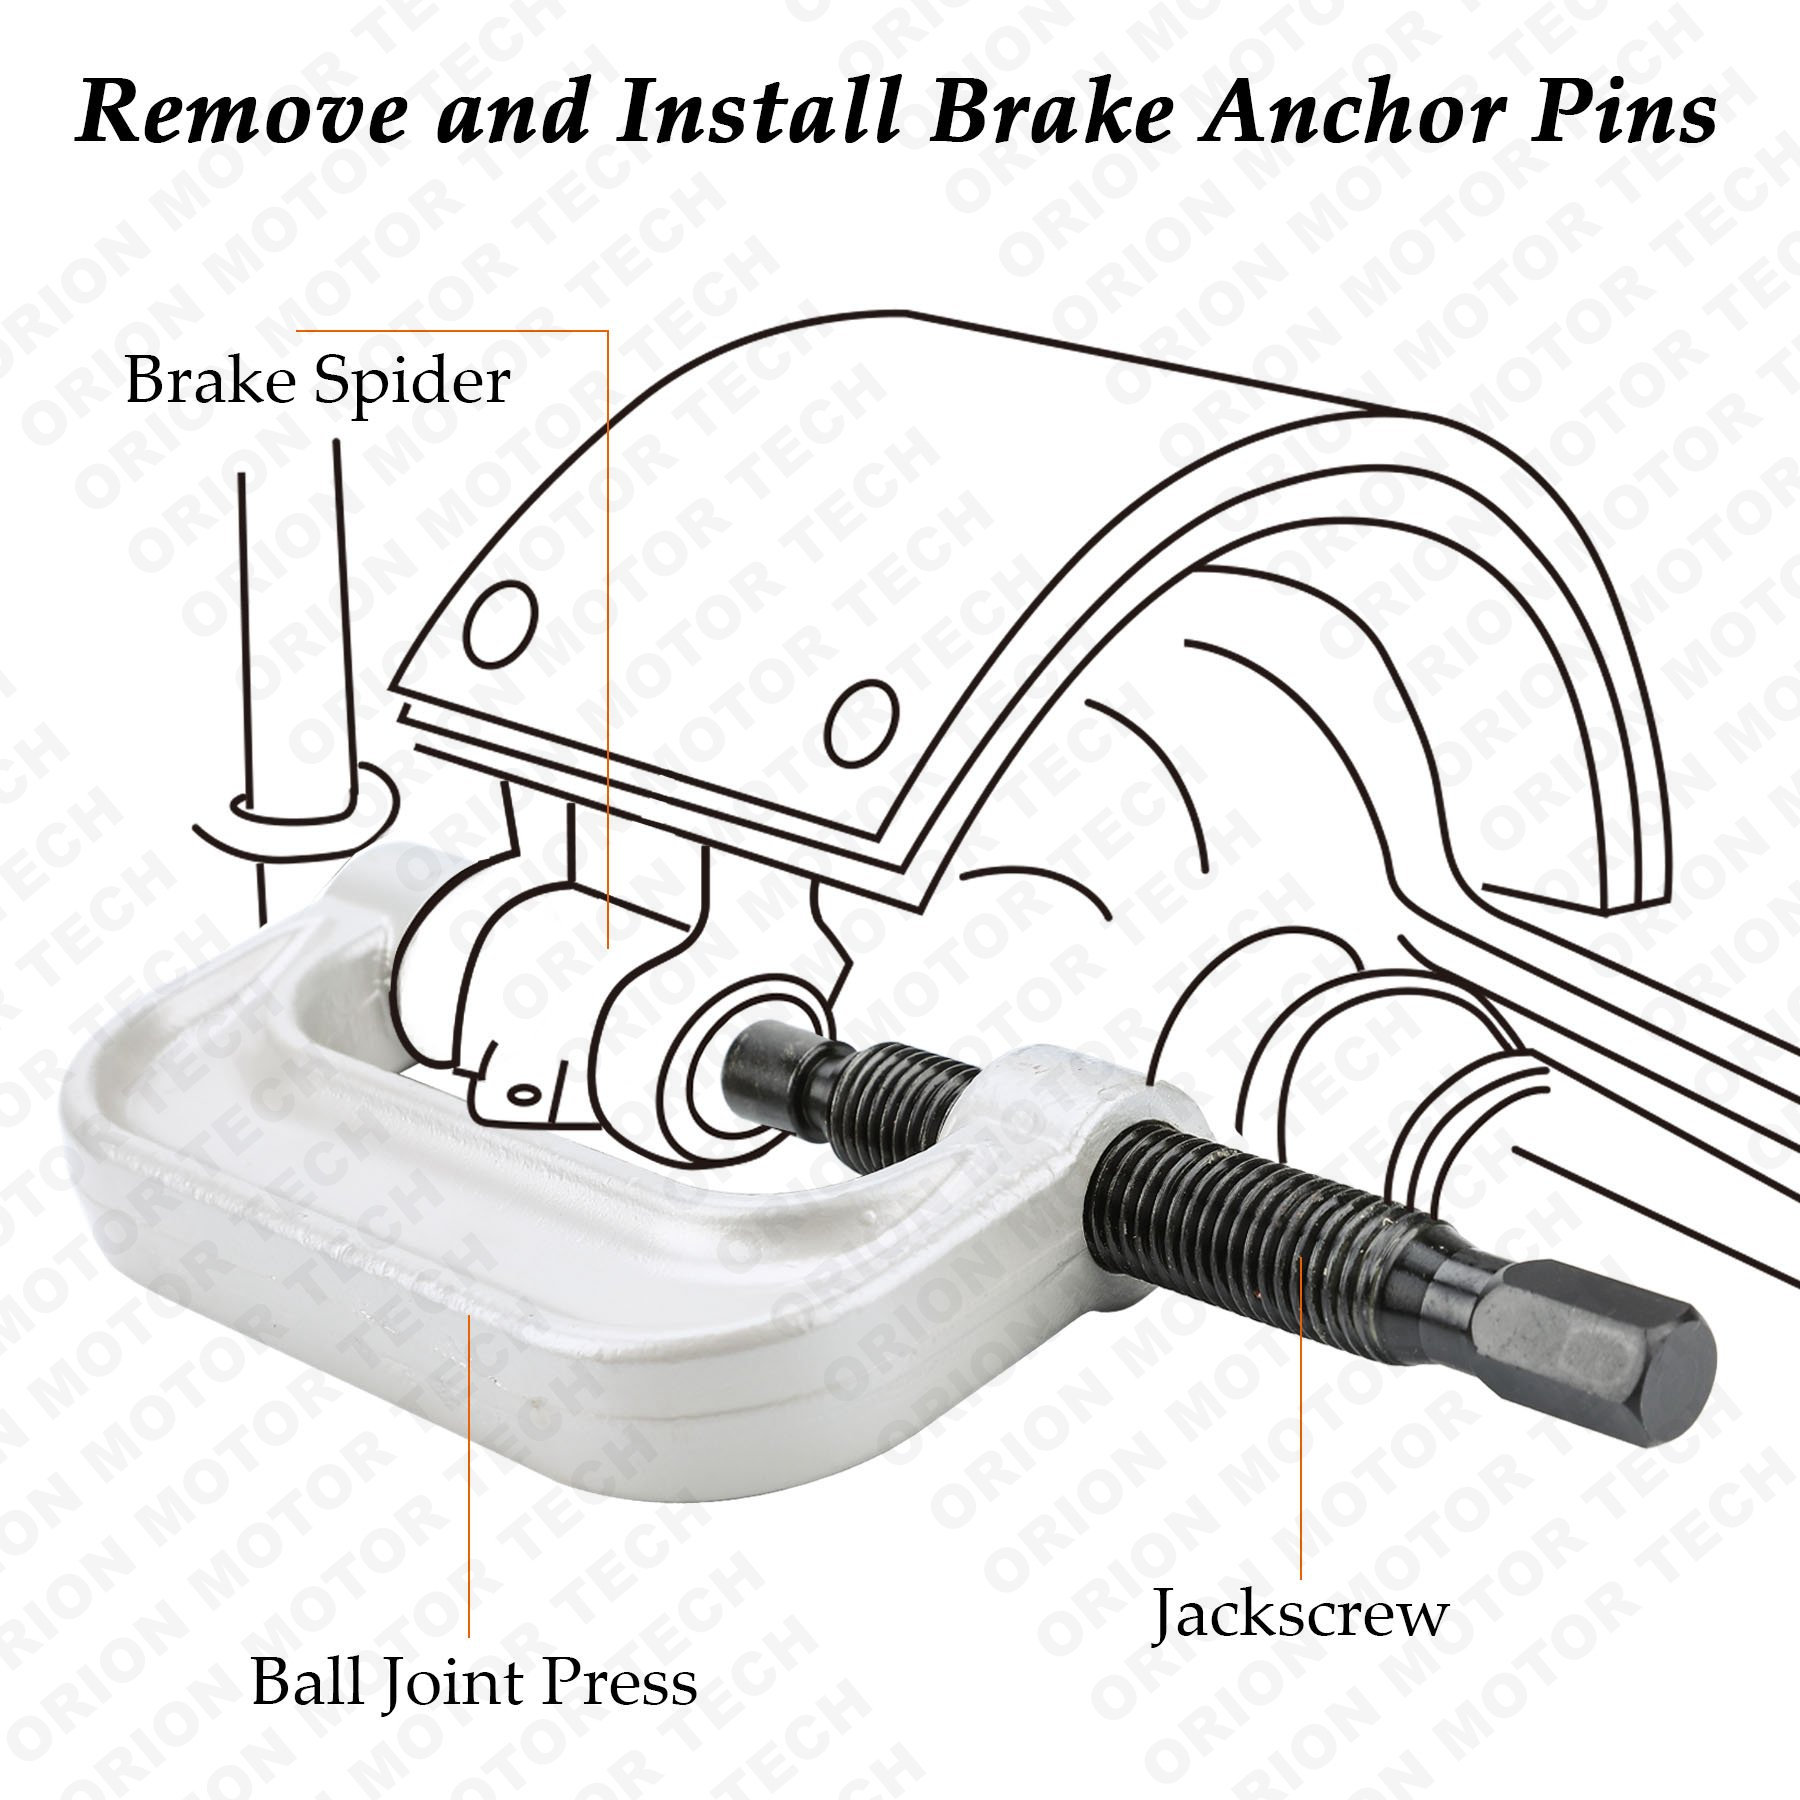 OrionMotorTech 22PCS Master Ball Joint Press | Upper and Lower Ball Joint Removal Tool | Automotive Mechanic Tool Set by OrionMotorTech (Image #5)